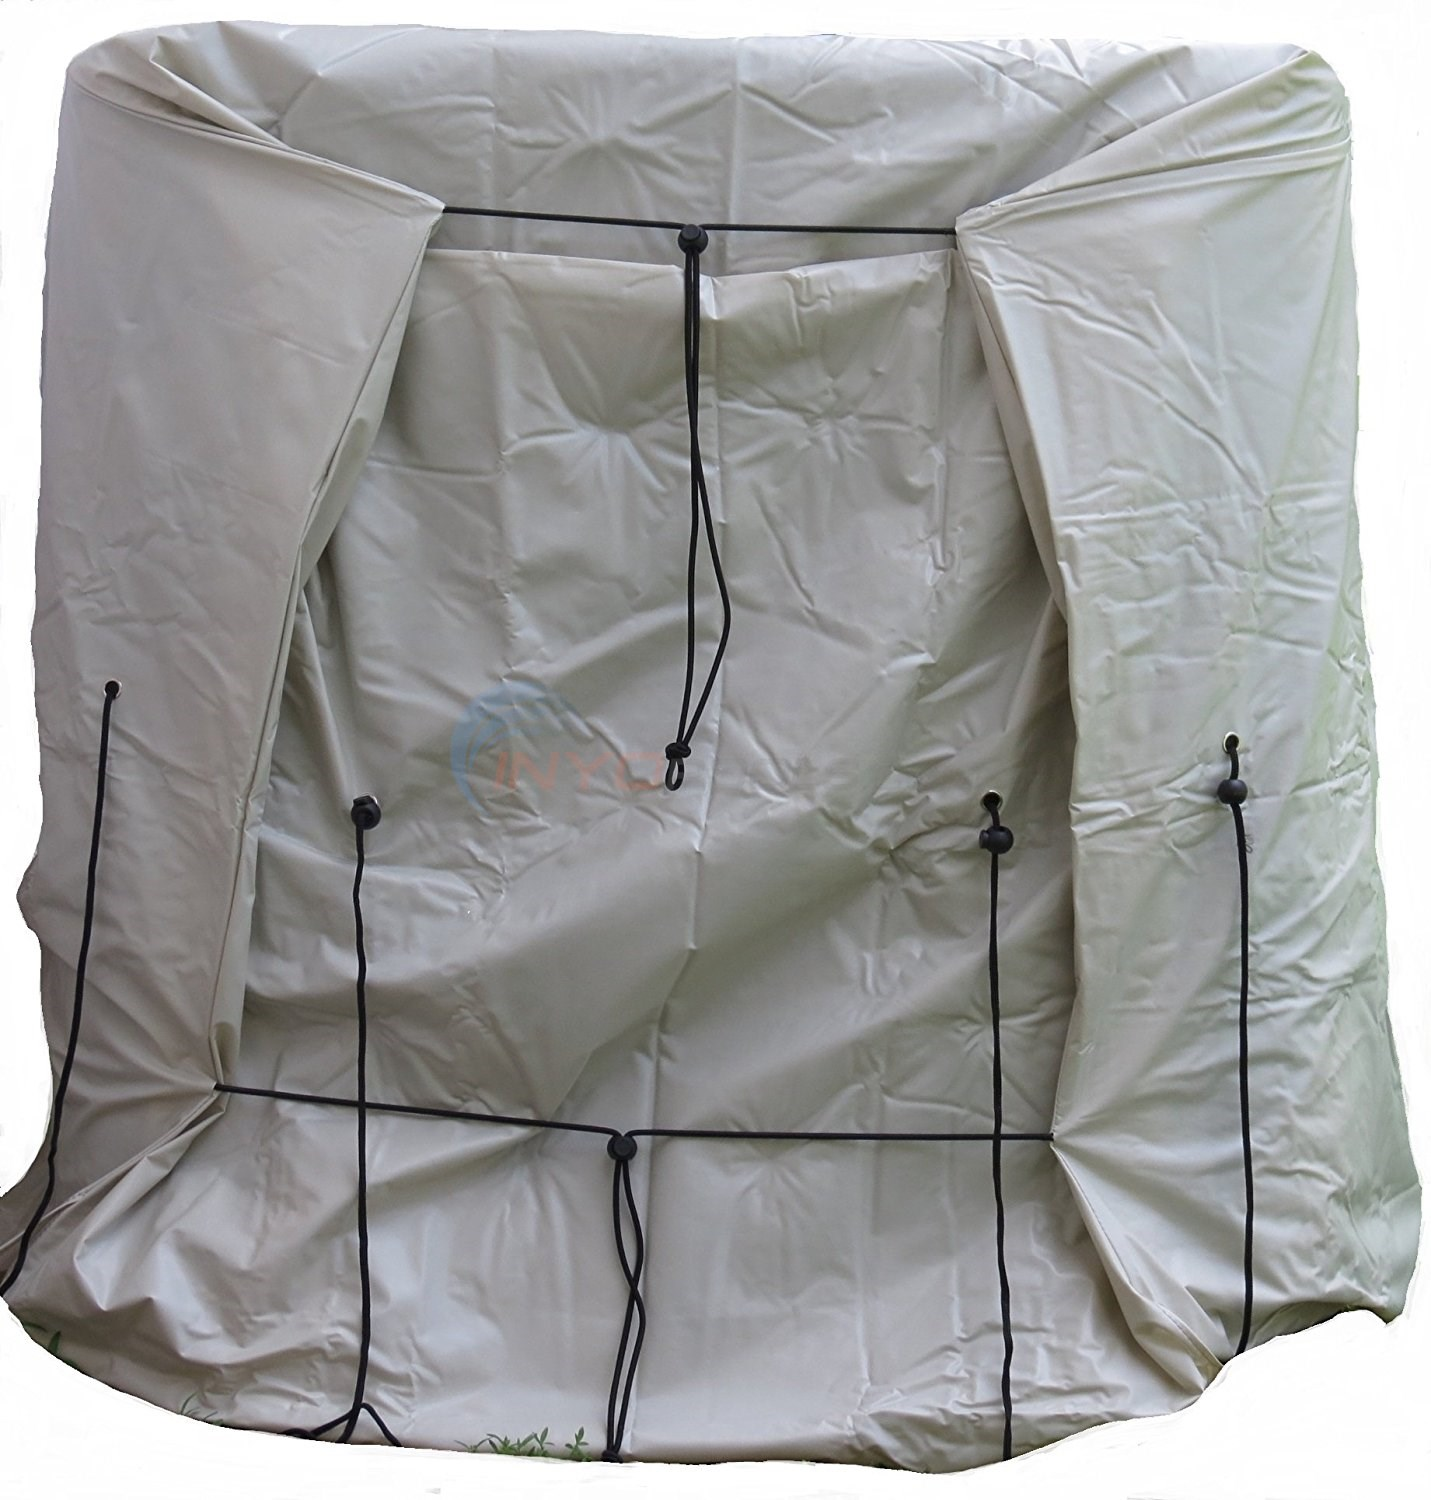 Pool Heater Cover-One Size Fits Most